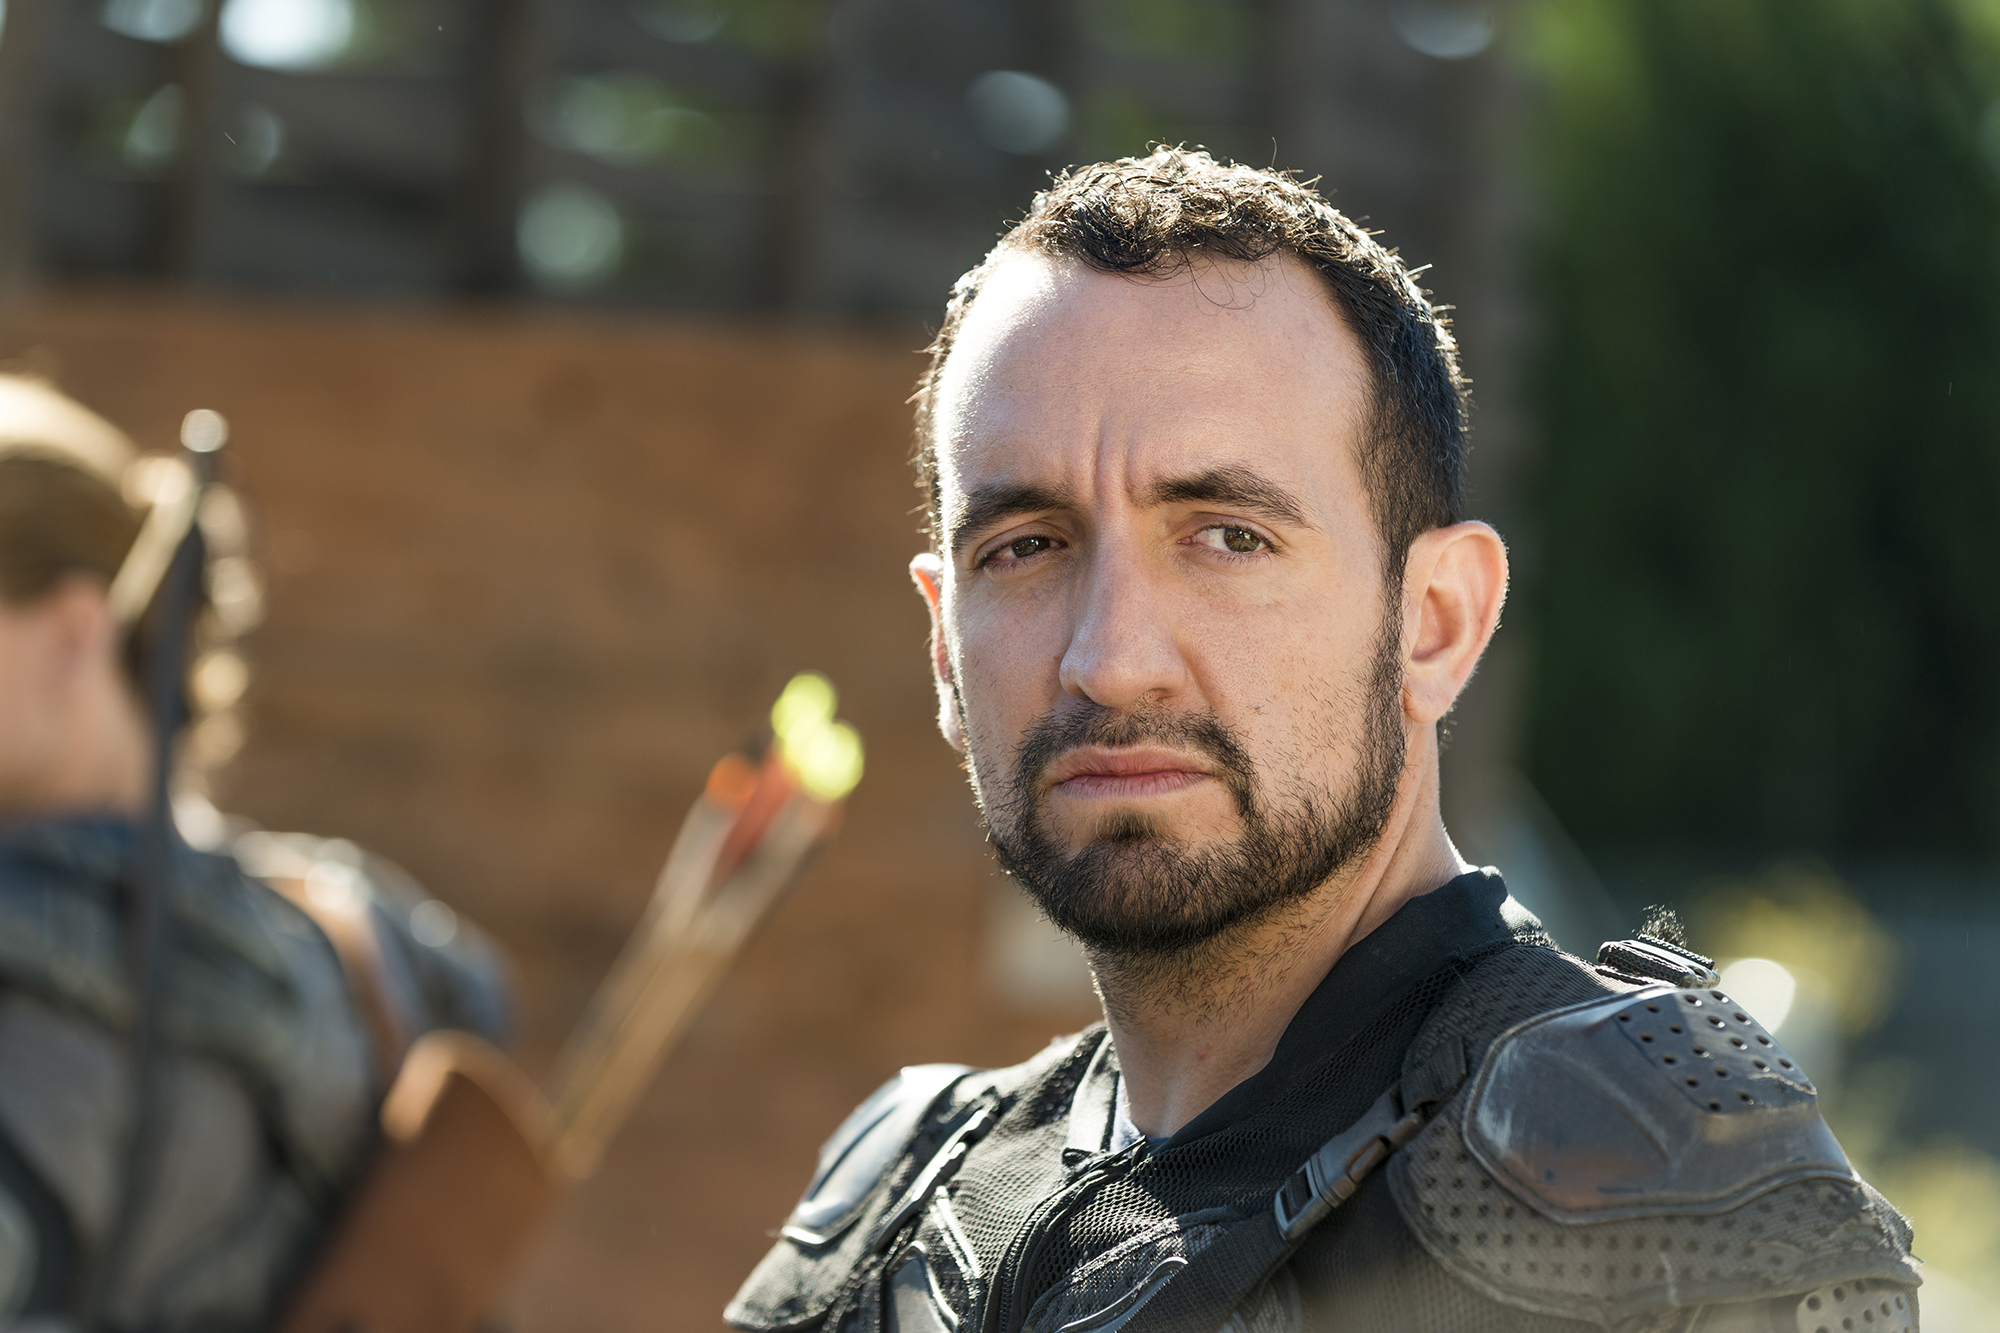 Carlos Navarro as Alvaro - The Walking Dead, Season 7, Episode 13